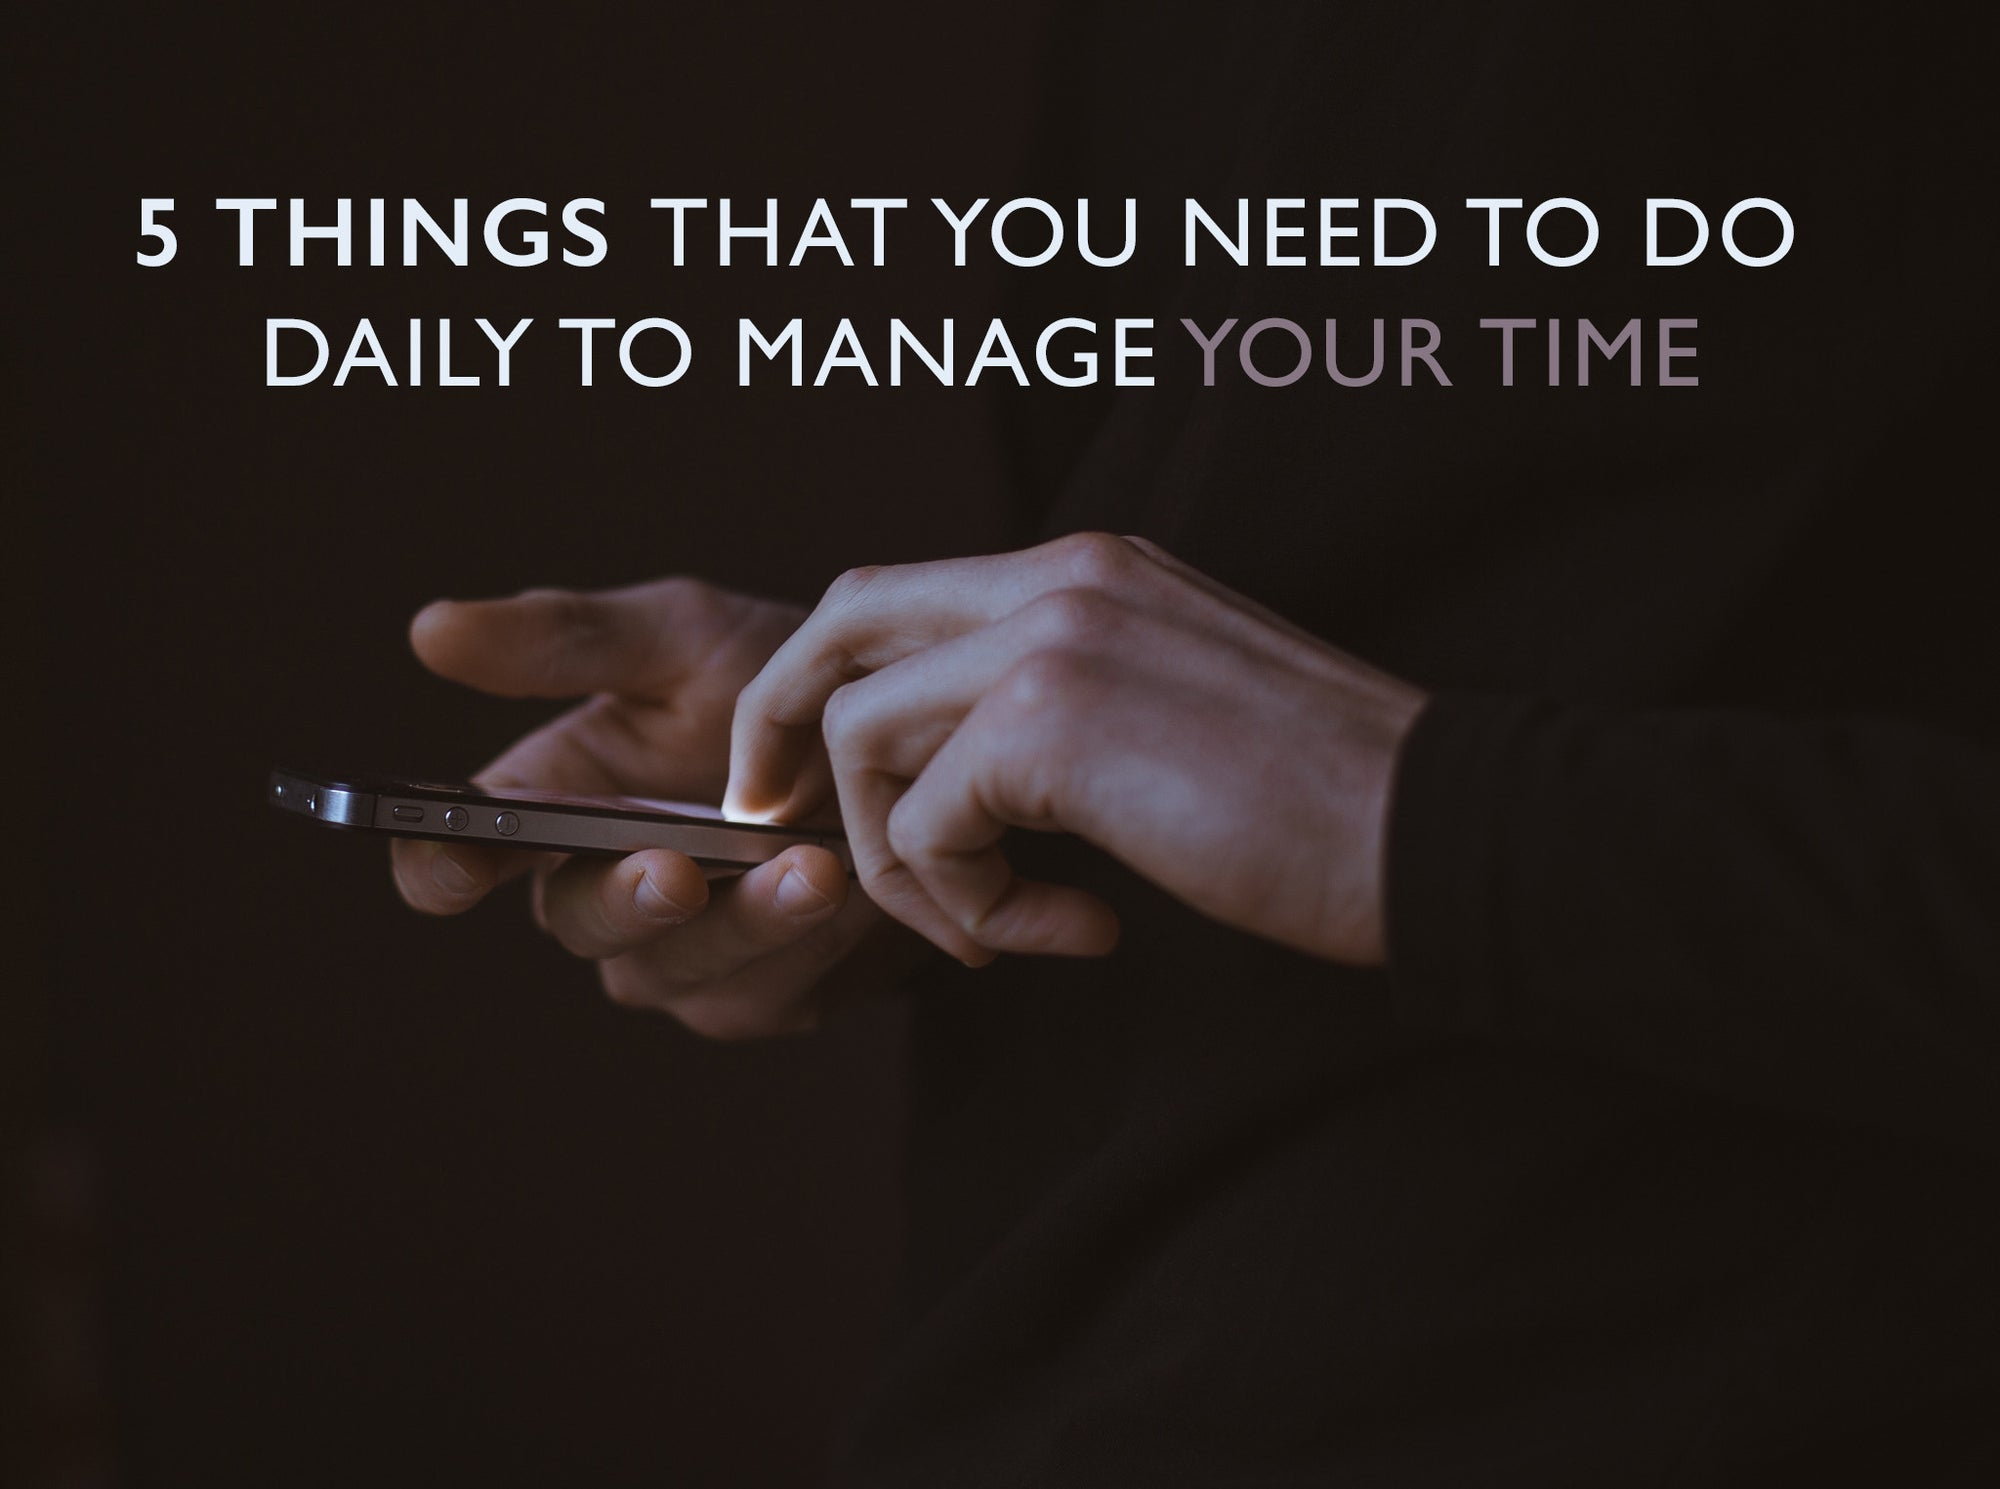 5 Things That You Need to Do Daily to Manage Your Time